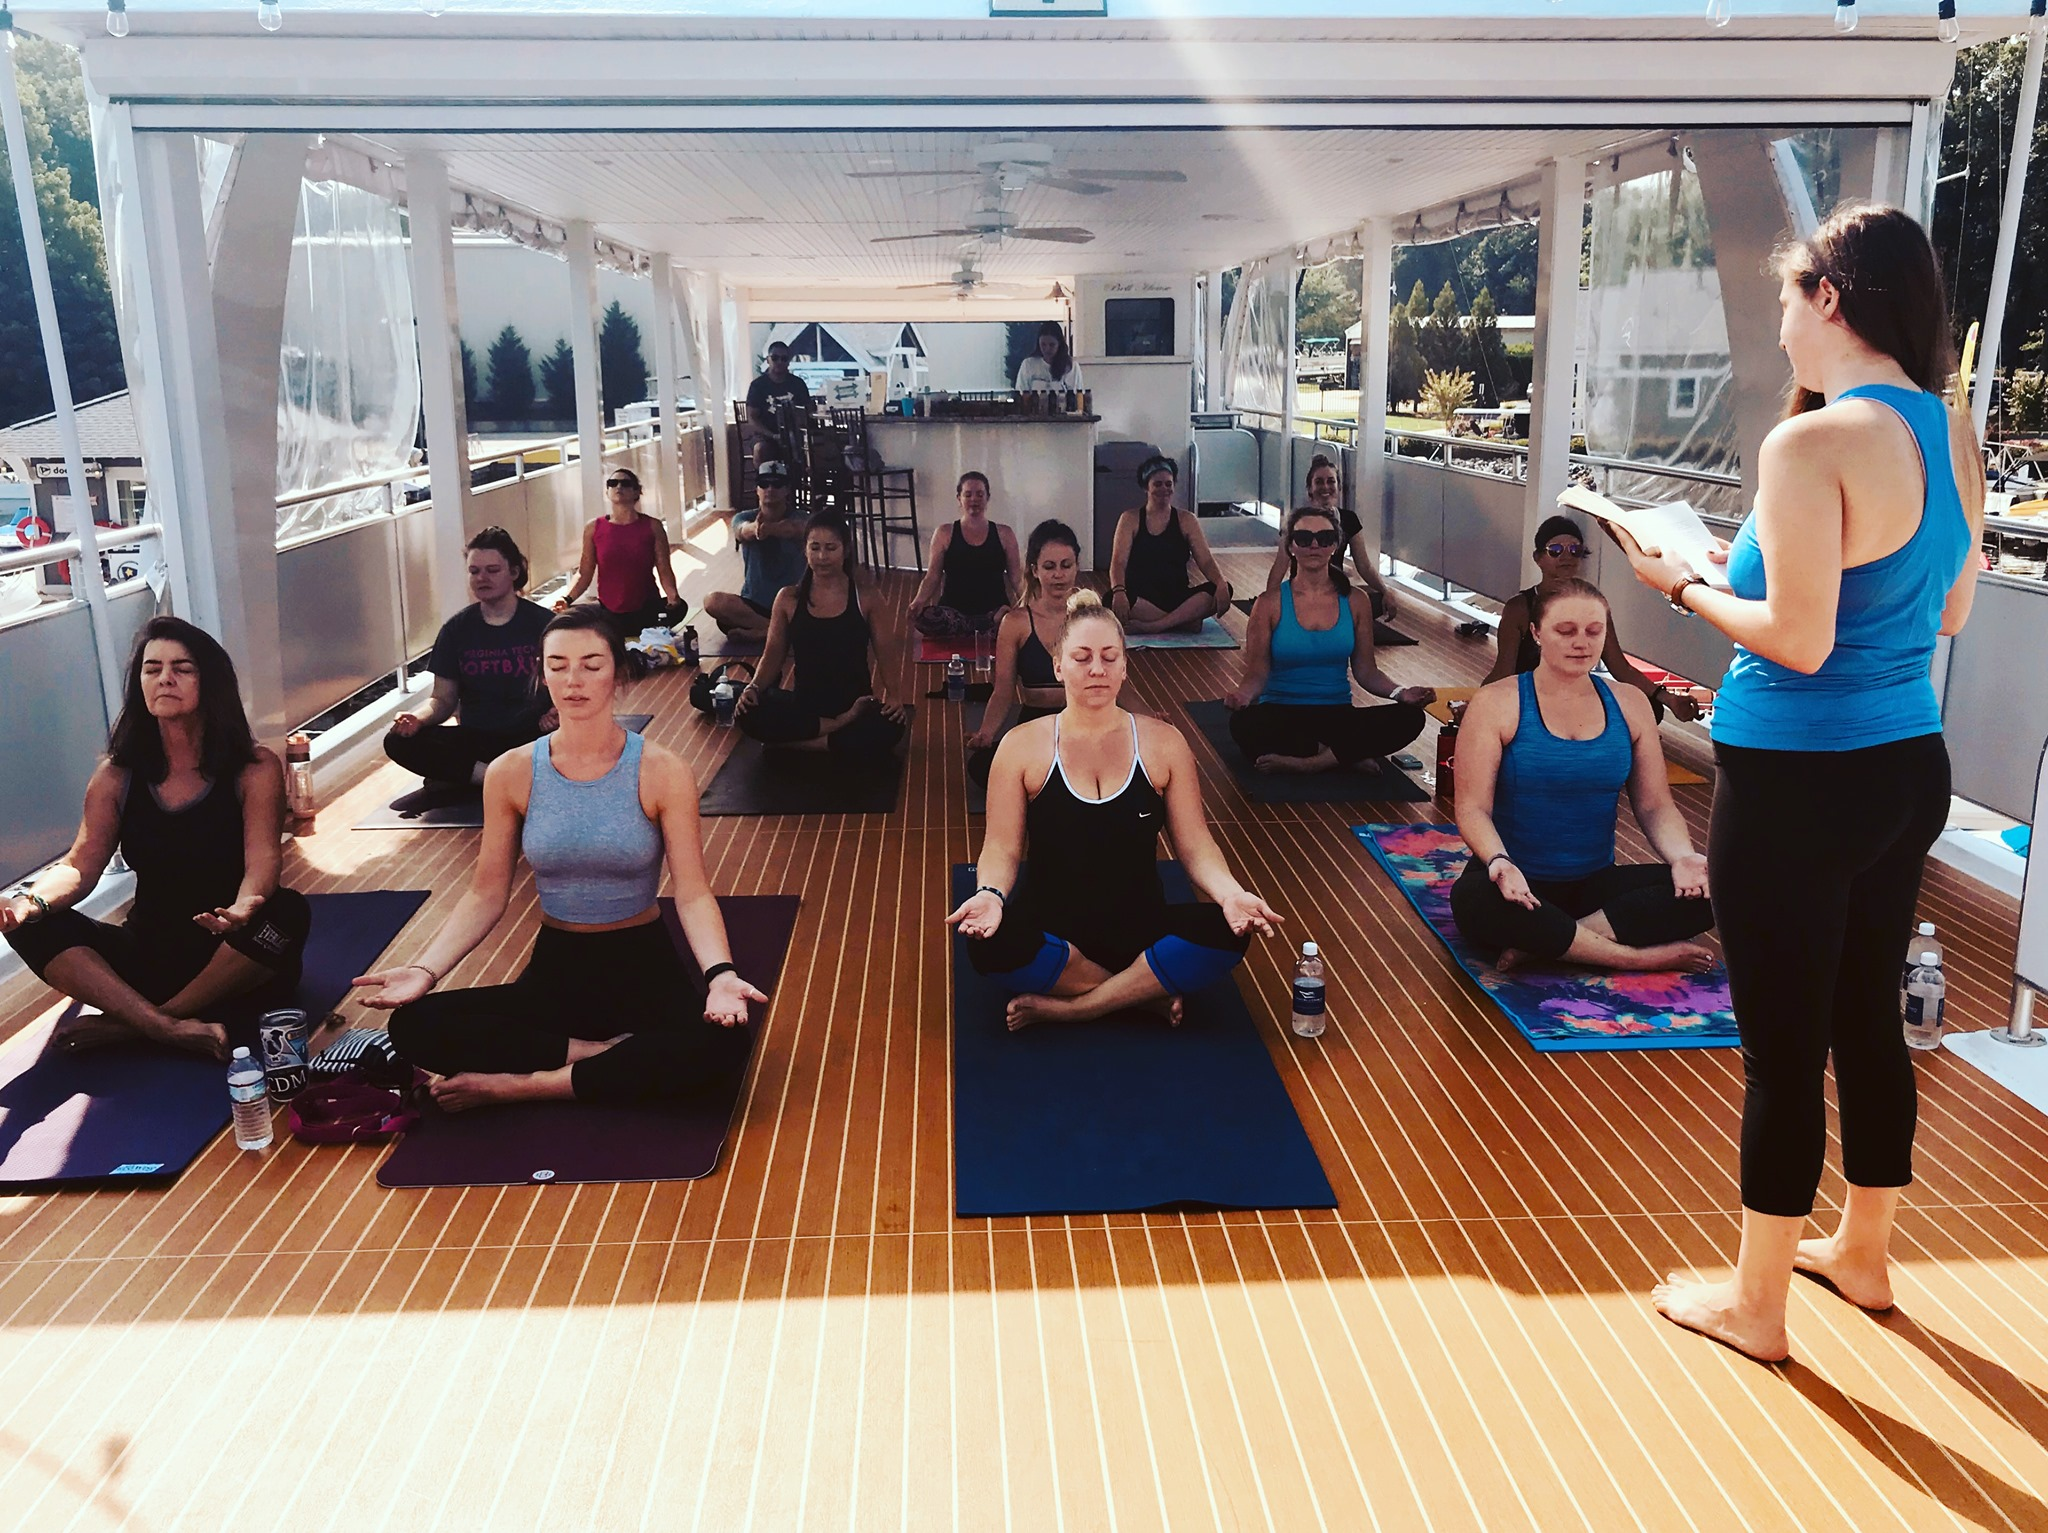 Image Courtesy Yacht Yoga for a Cause